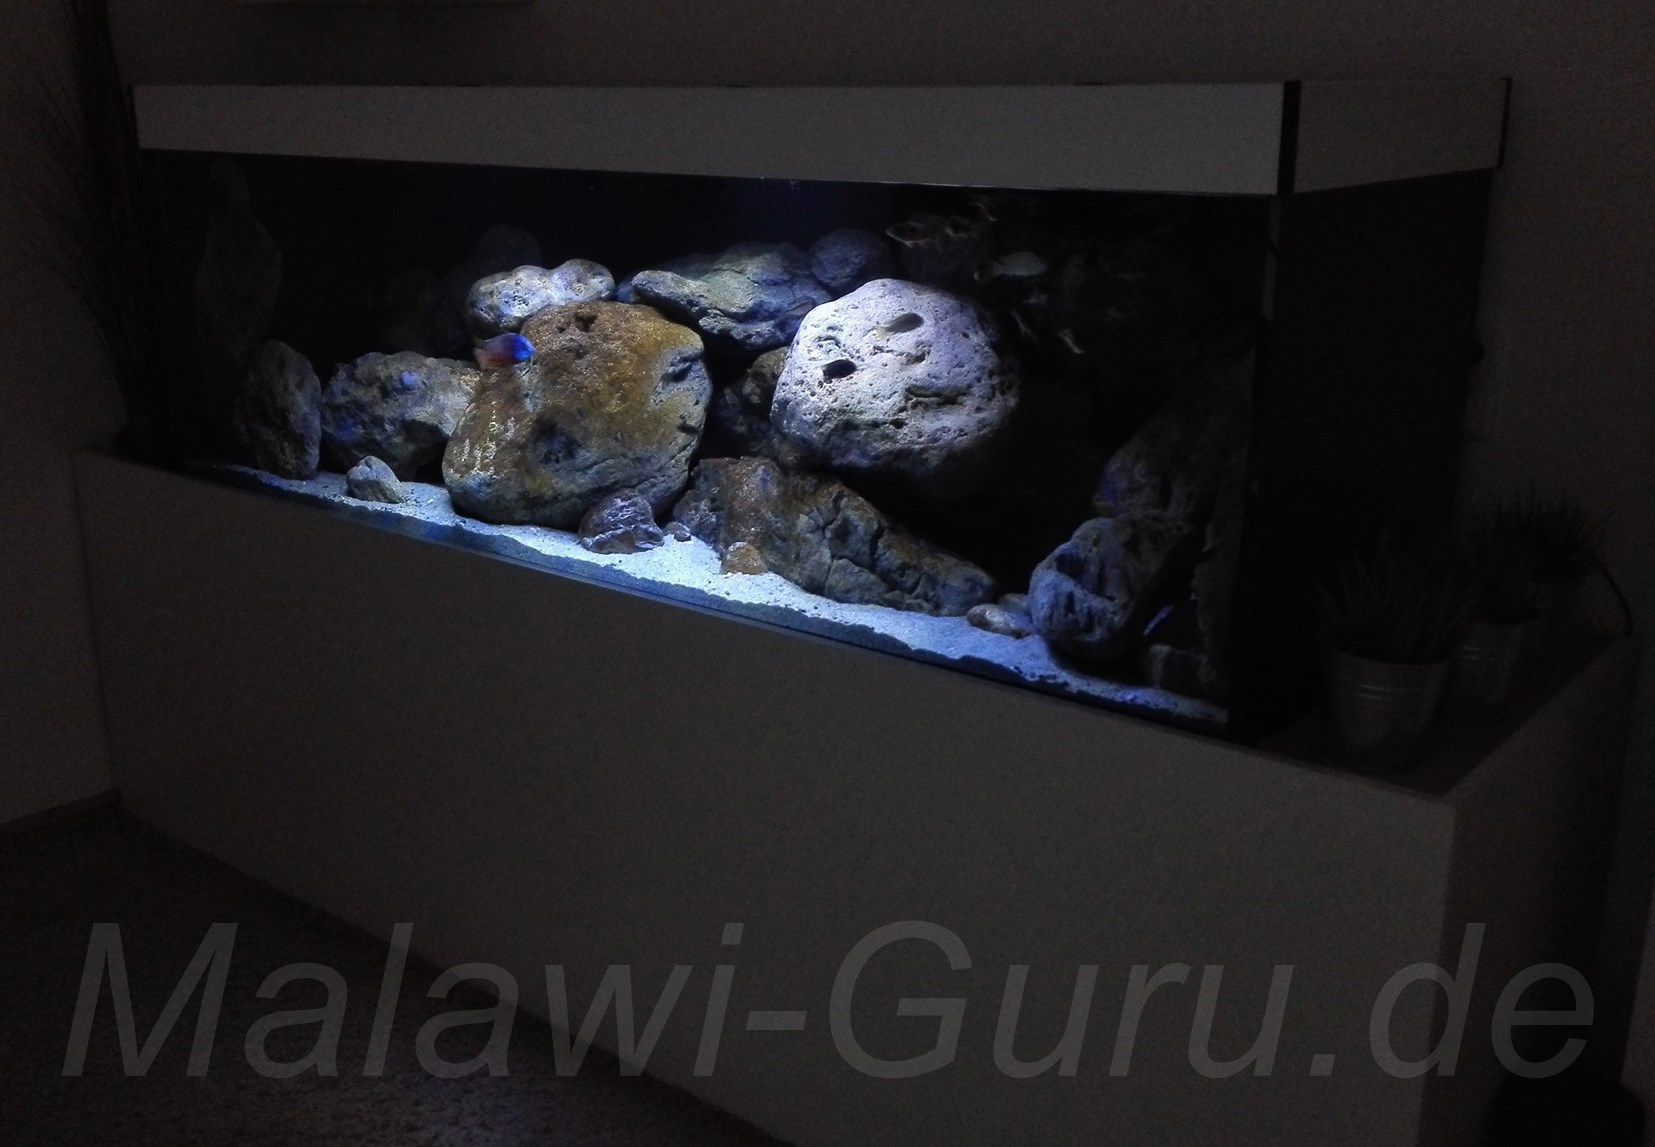 malawi aquarien malawi aquarium in dekorationen f r. Black Bedroom Furniture Sets. Home Design Ideas